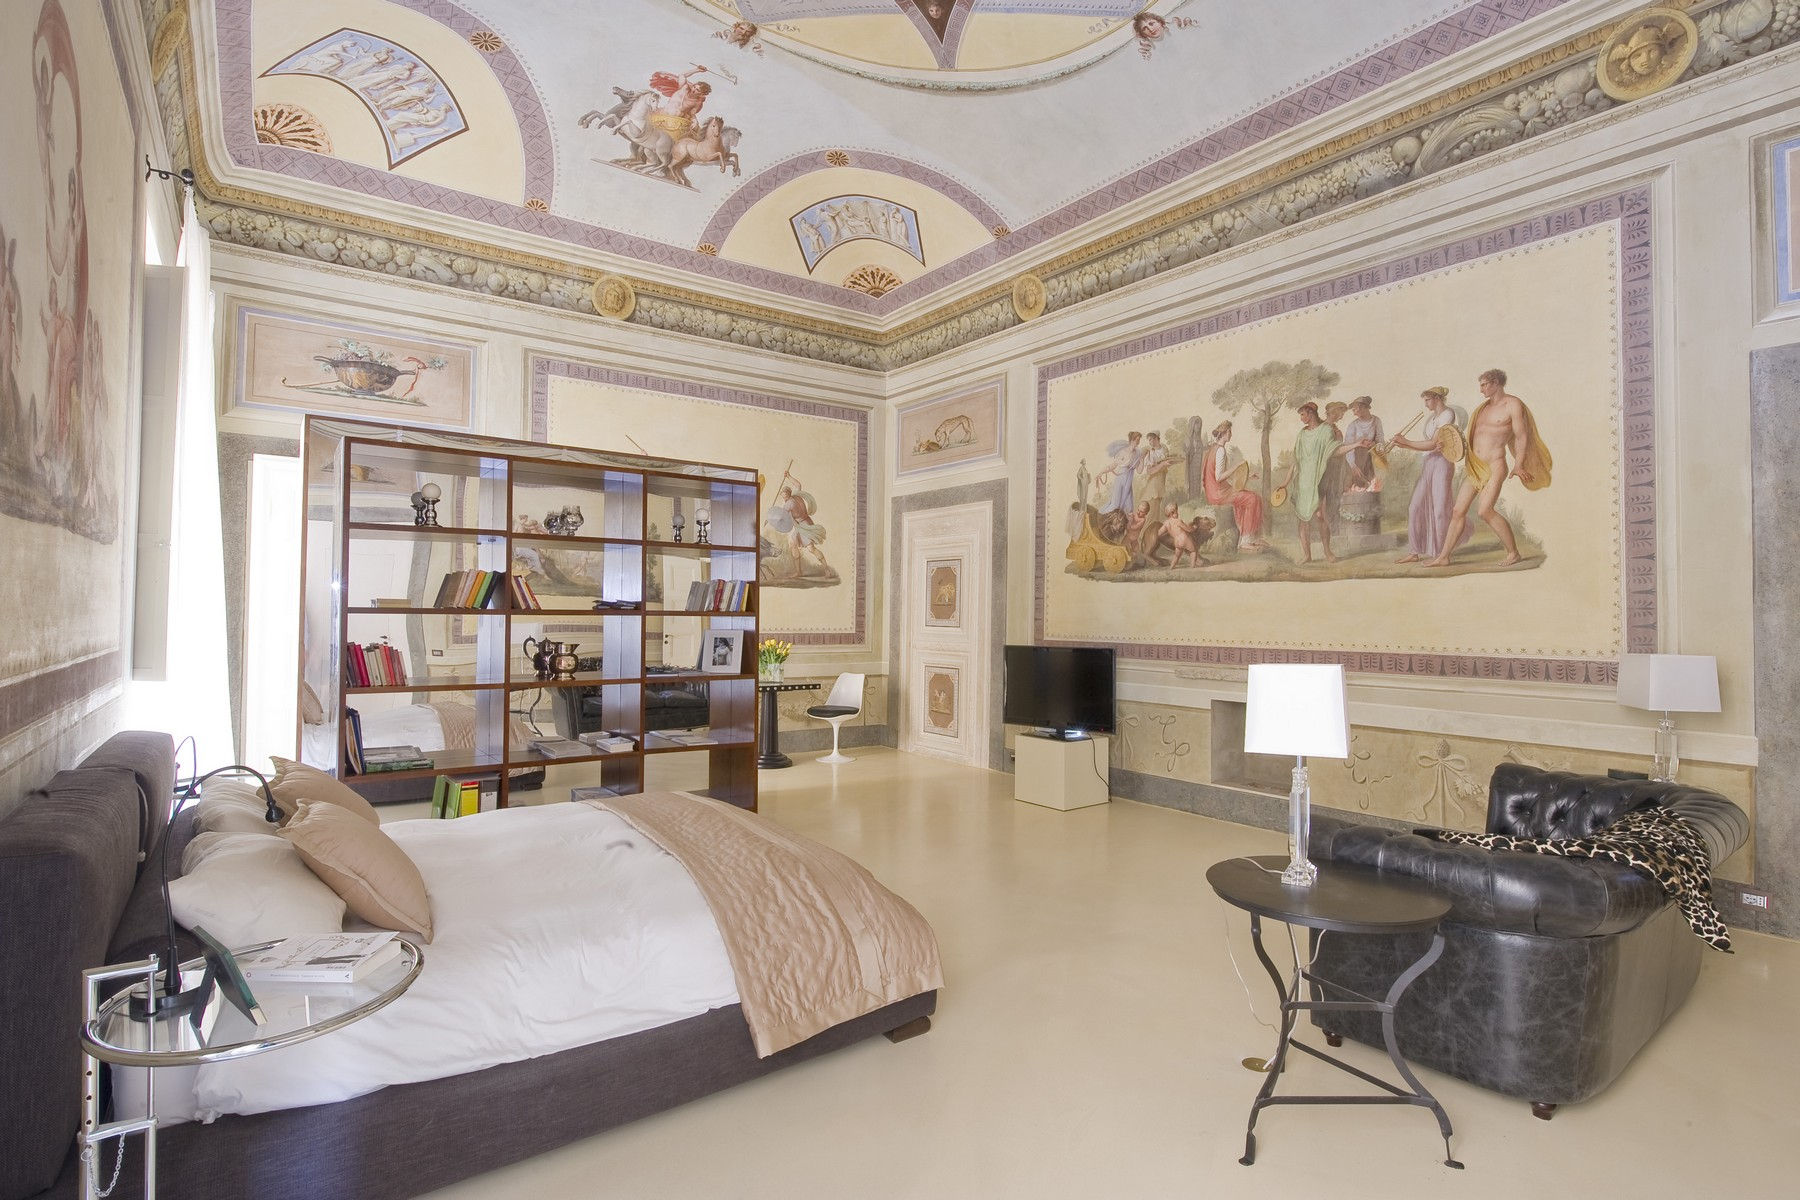 Apartment for Sale at Historic Opera Apartment in the heart of Florence Via de' Benci Firenze, Florence 50122 Italy